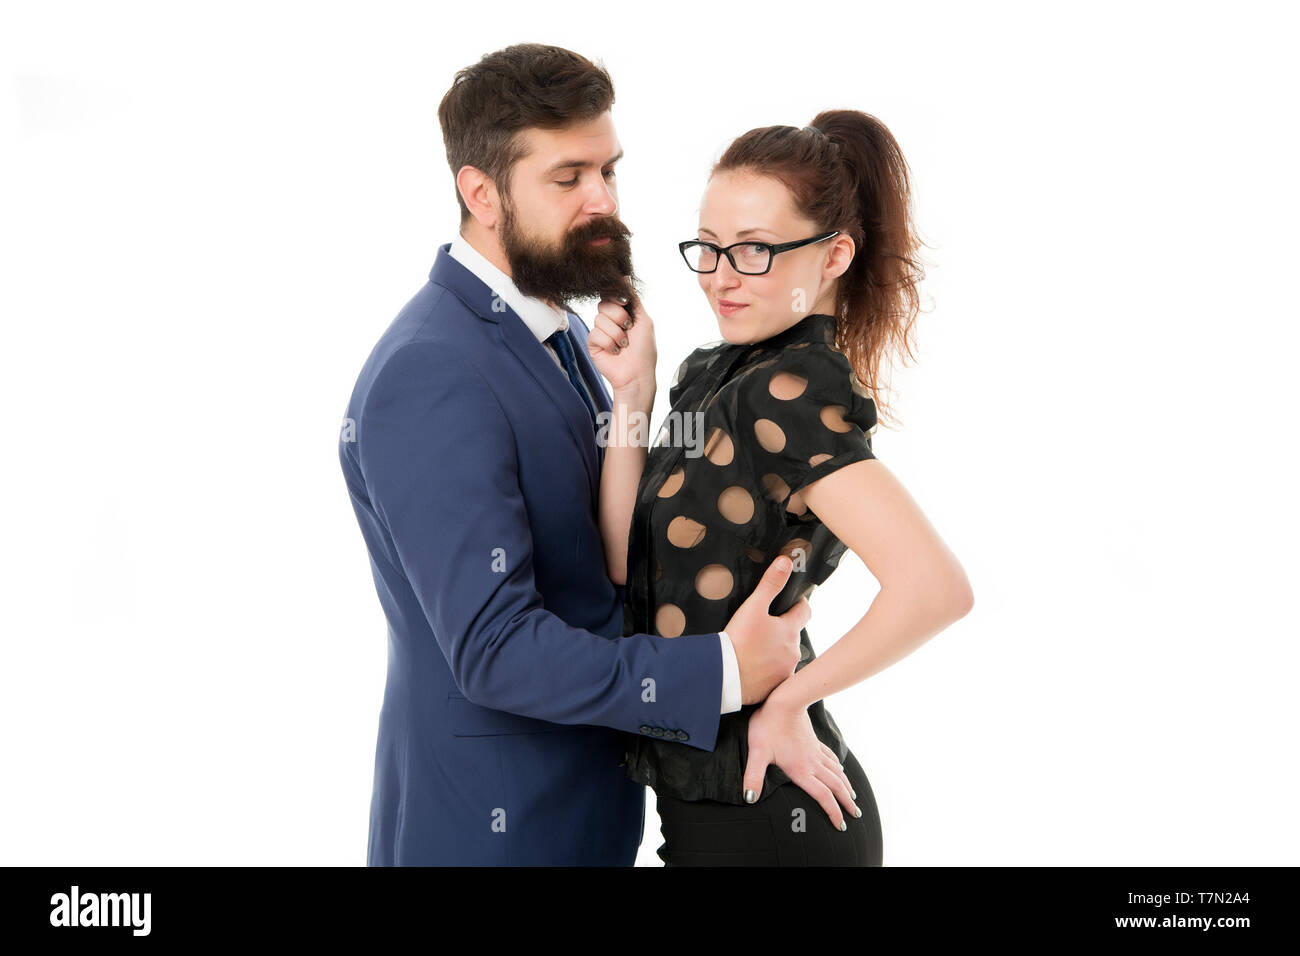 First impressions are everything. Man and woman compete job position. Labor market competition. Job interview. Office flirt. Career company. Dream job concept. Office job affair. Flirting with boss. - Stock Image